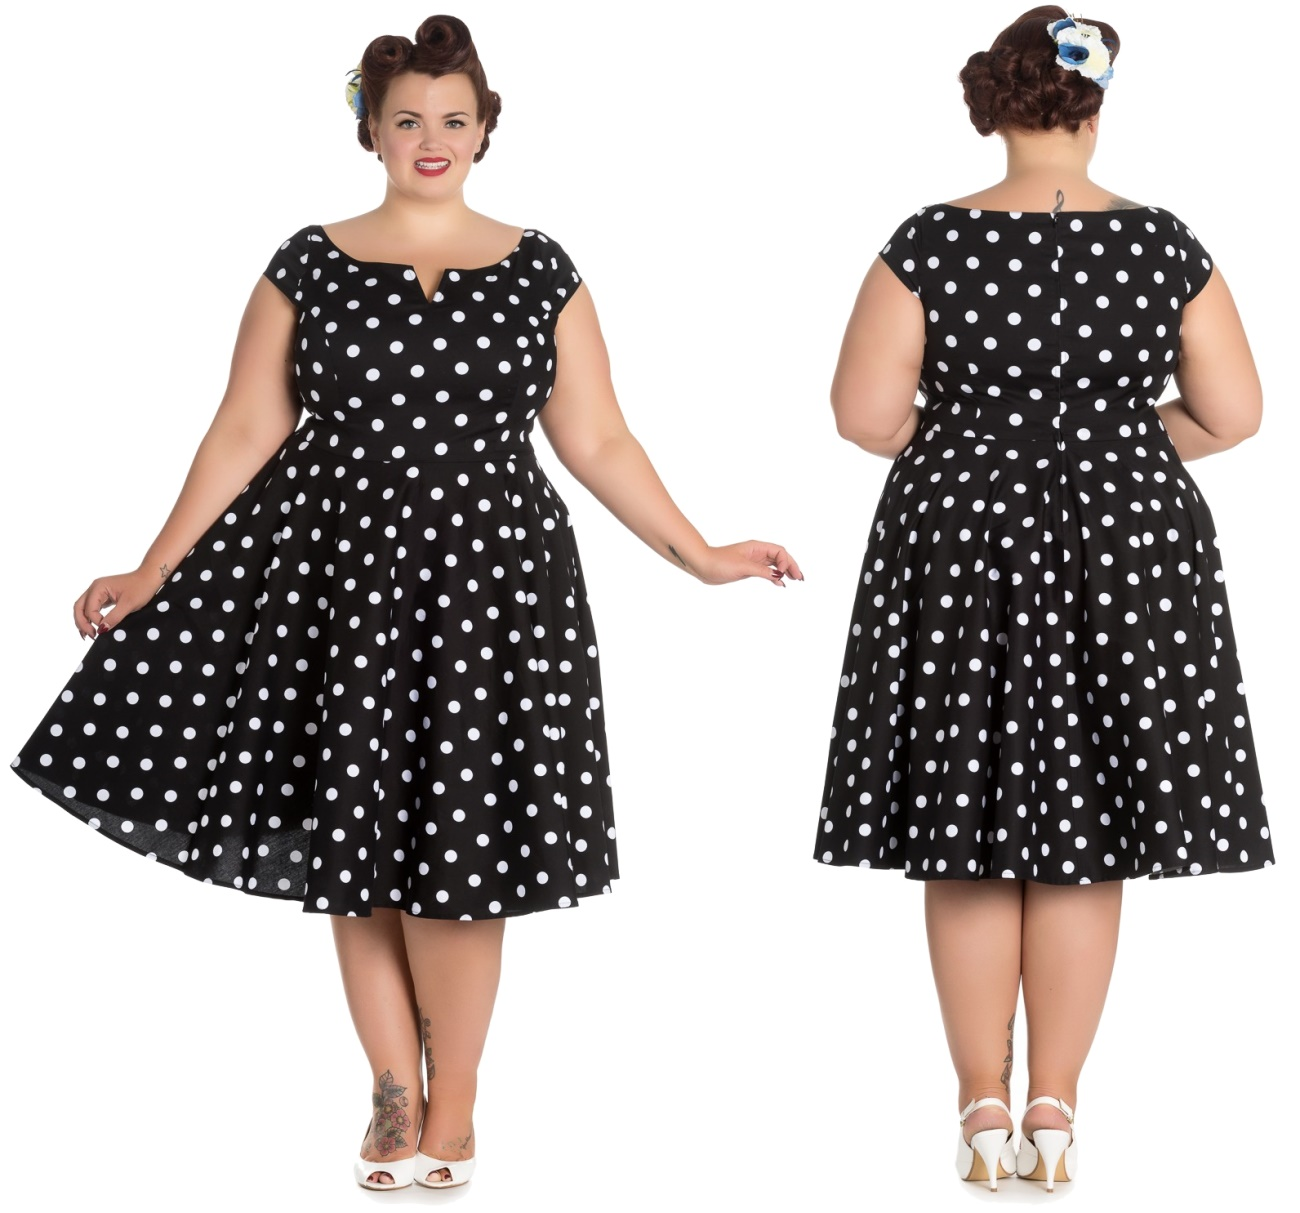 21df0b77e96ec5 Nicky Dress Rockn Roll Kleid Rockabilly Kleid Hellbunny Plus ...